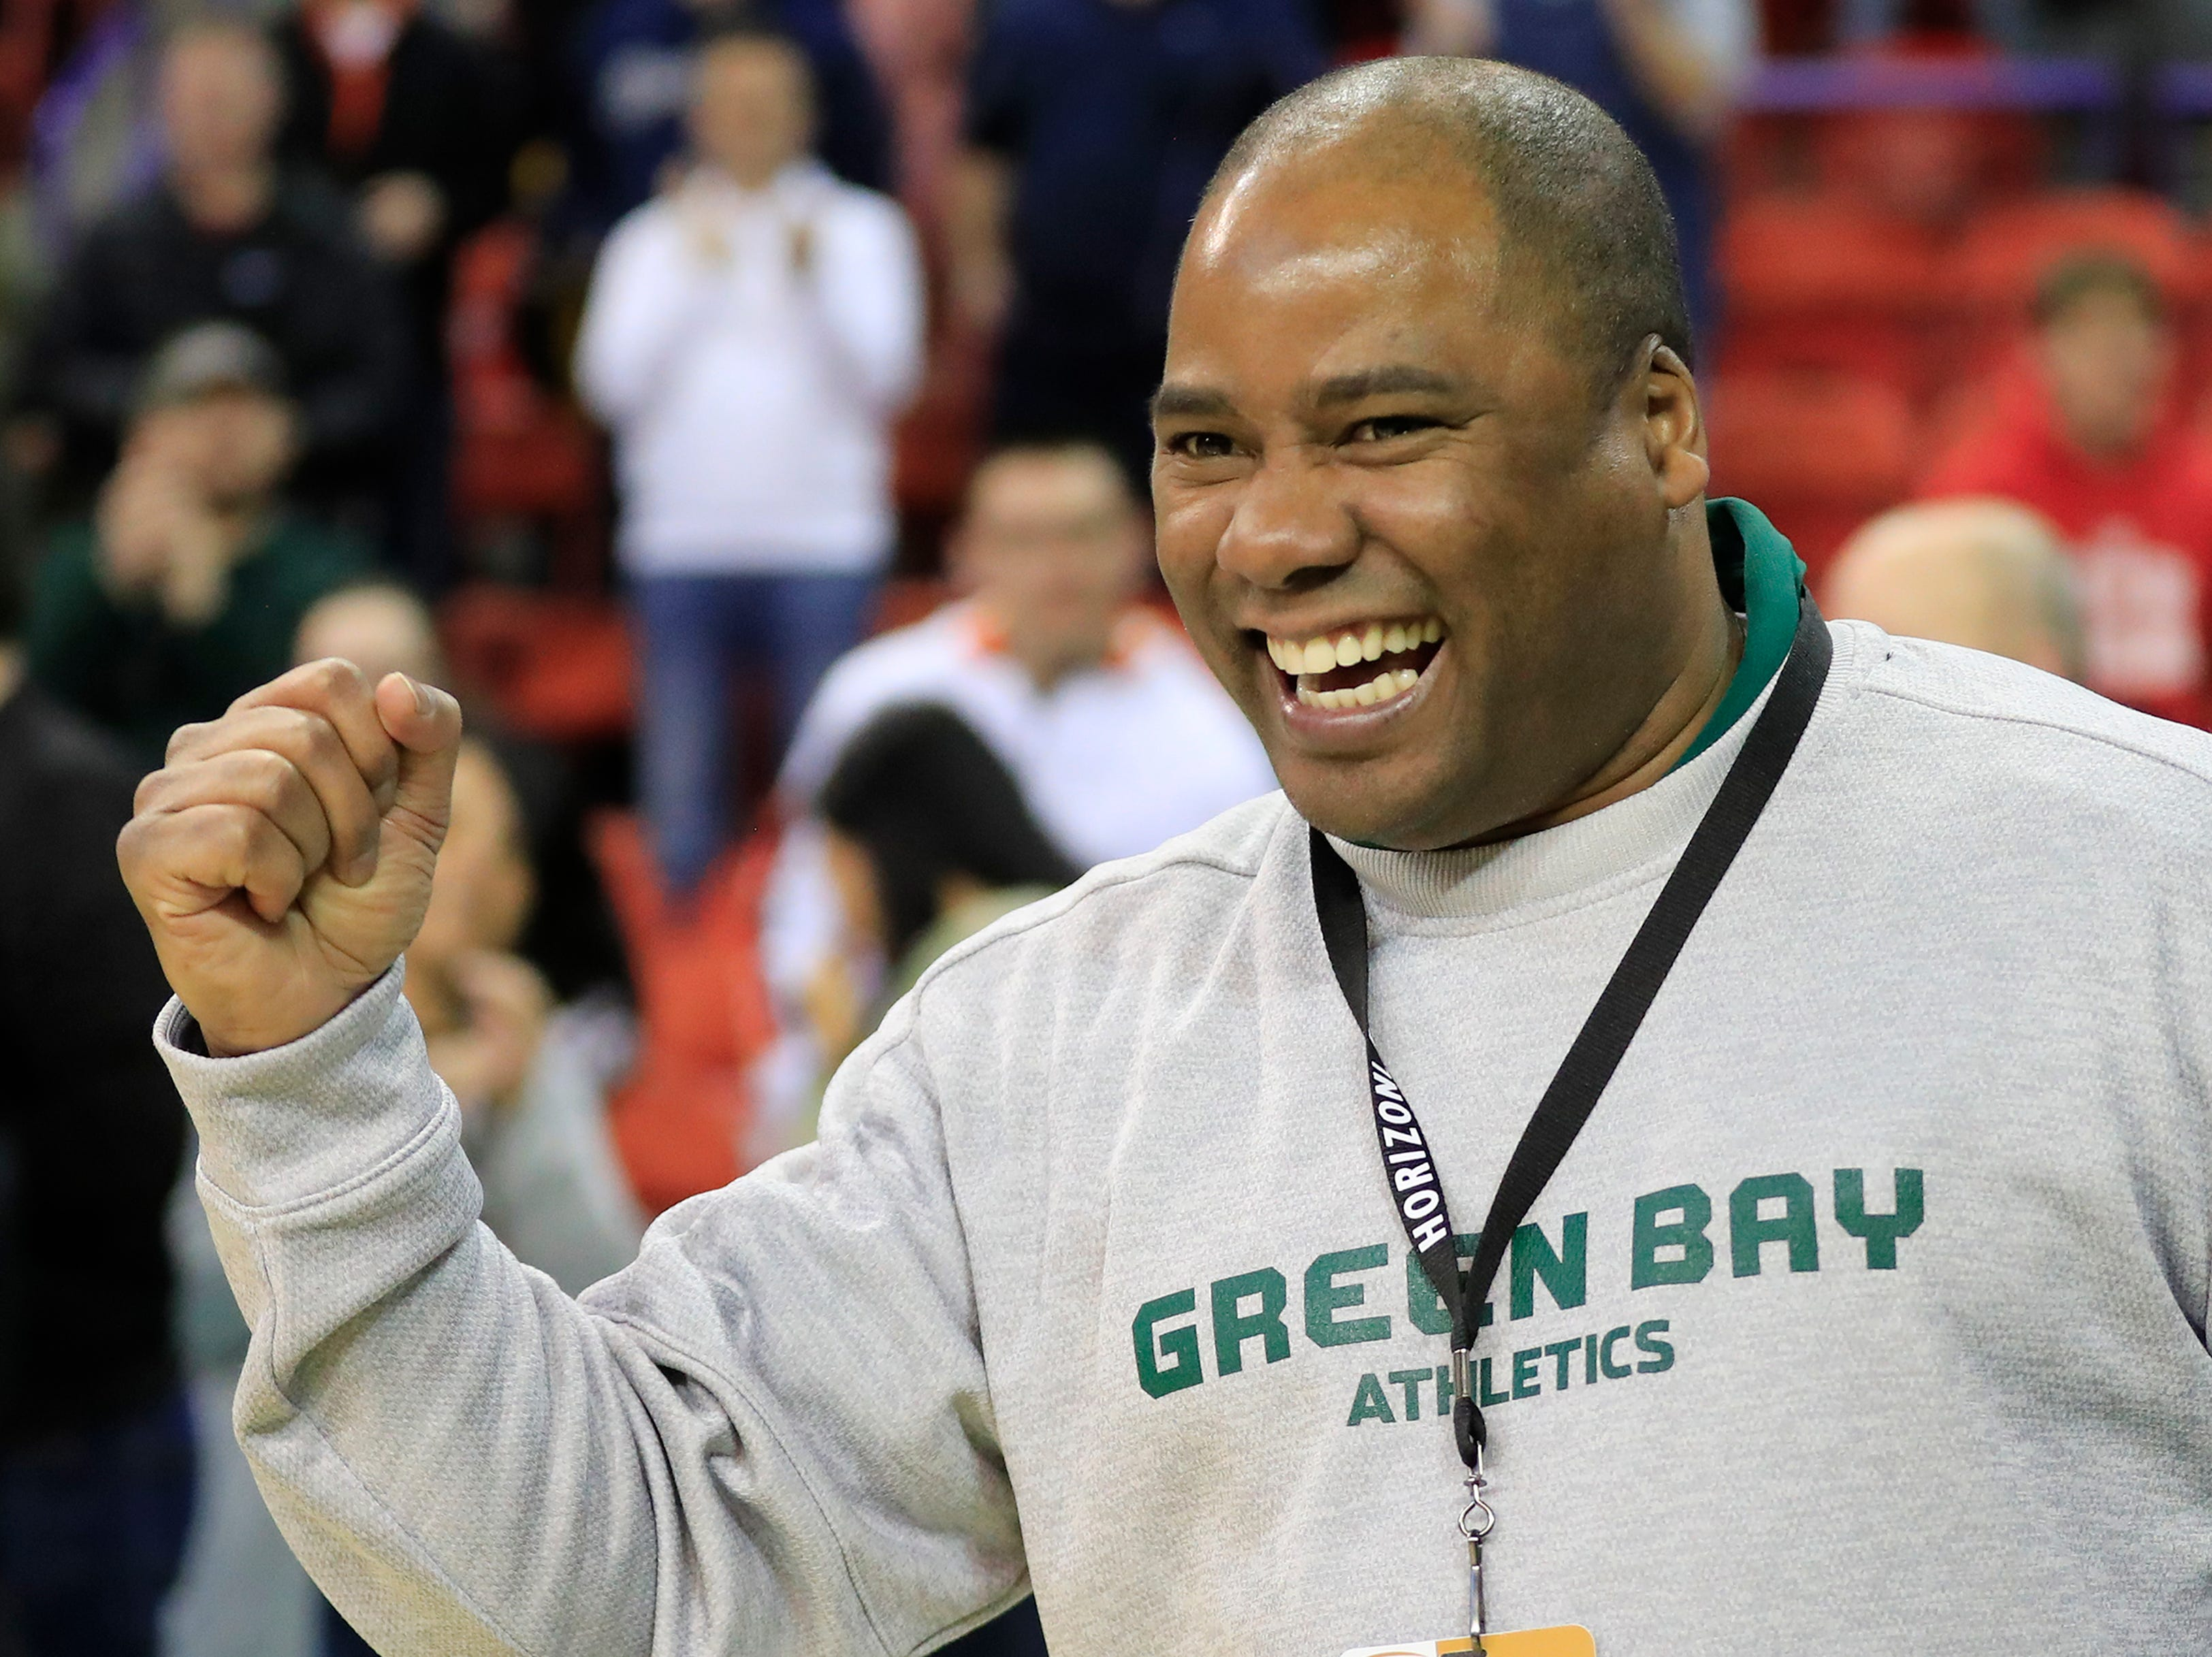 Green Bay Phoenix Charles Guthrie celebrates after the Phoenix defeated the Cleveland State Vikings in a Horizon League basketball game at the Resch Center on Saturday, January 5, 2019 in Green Bay, Wis.